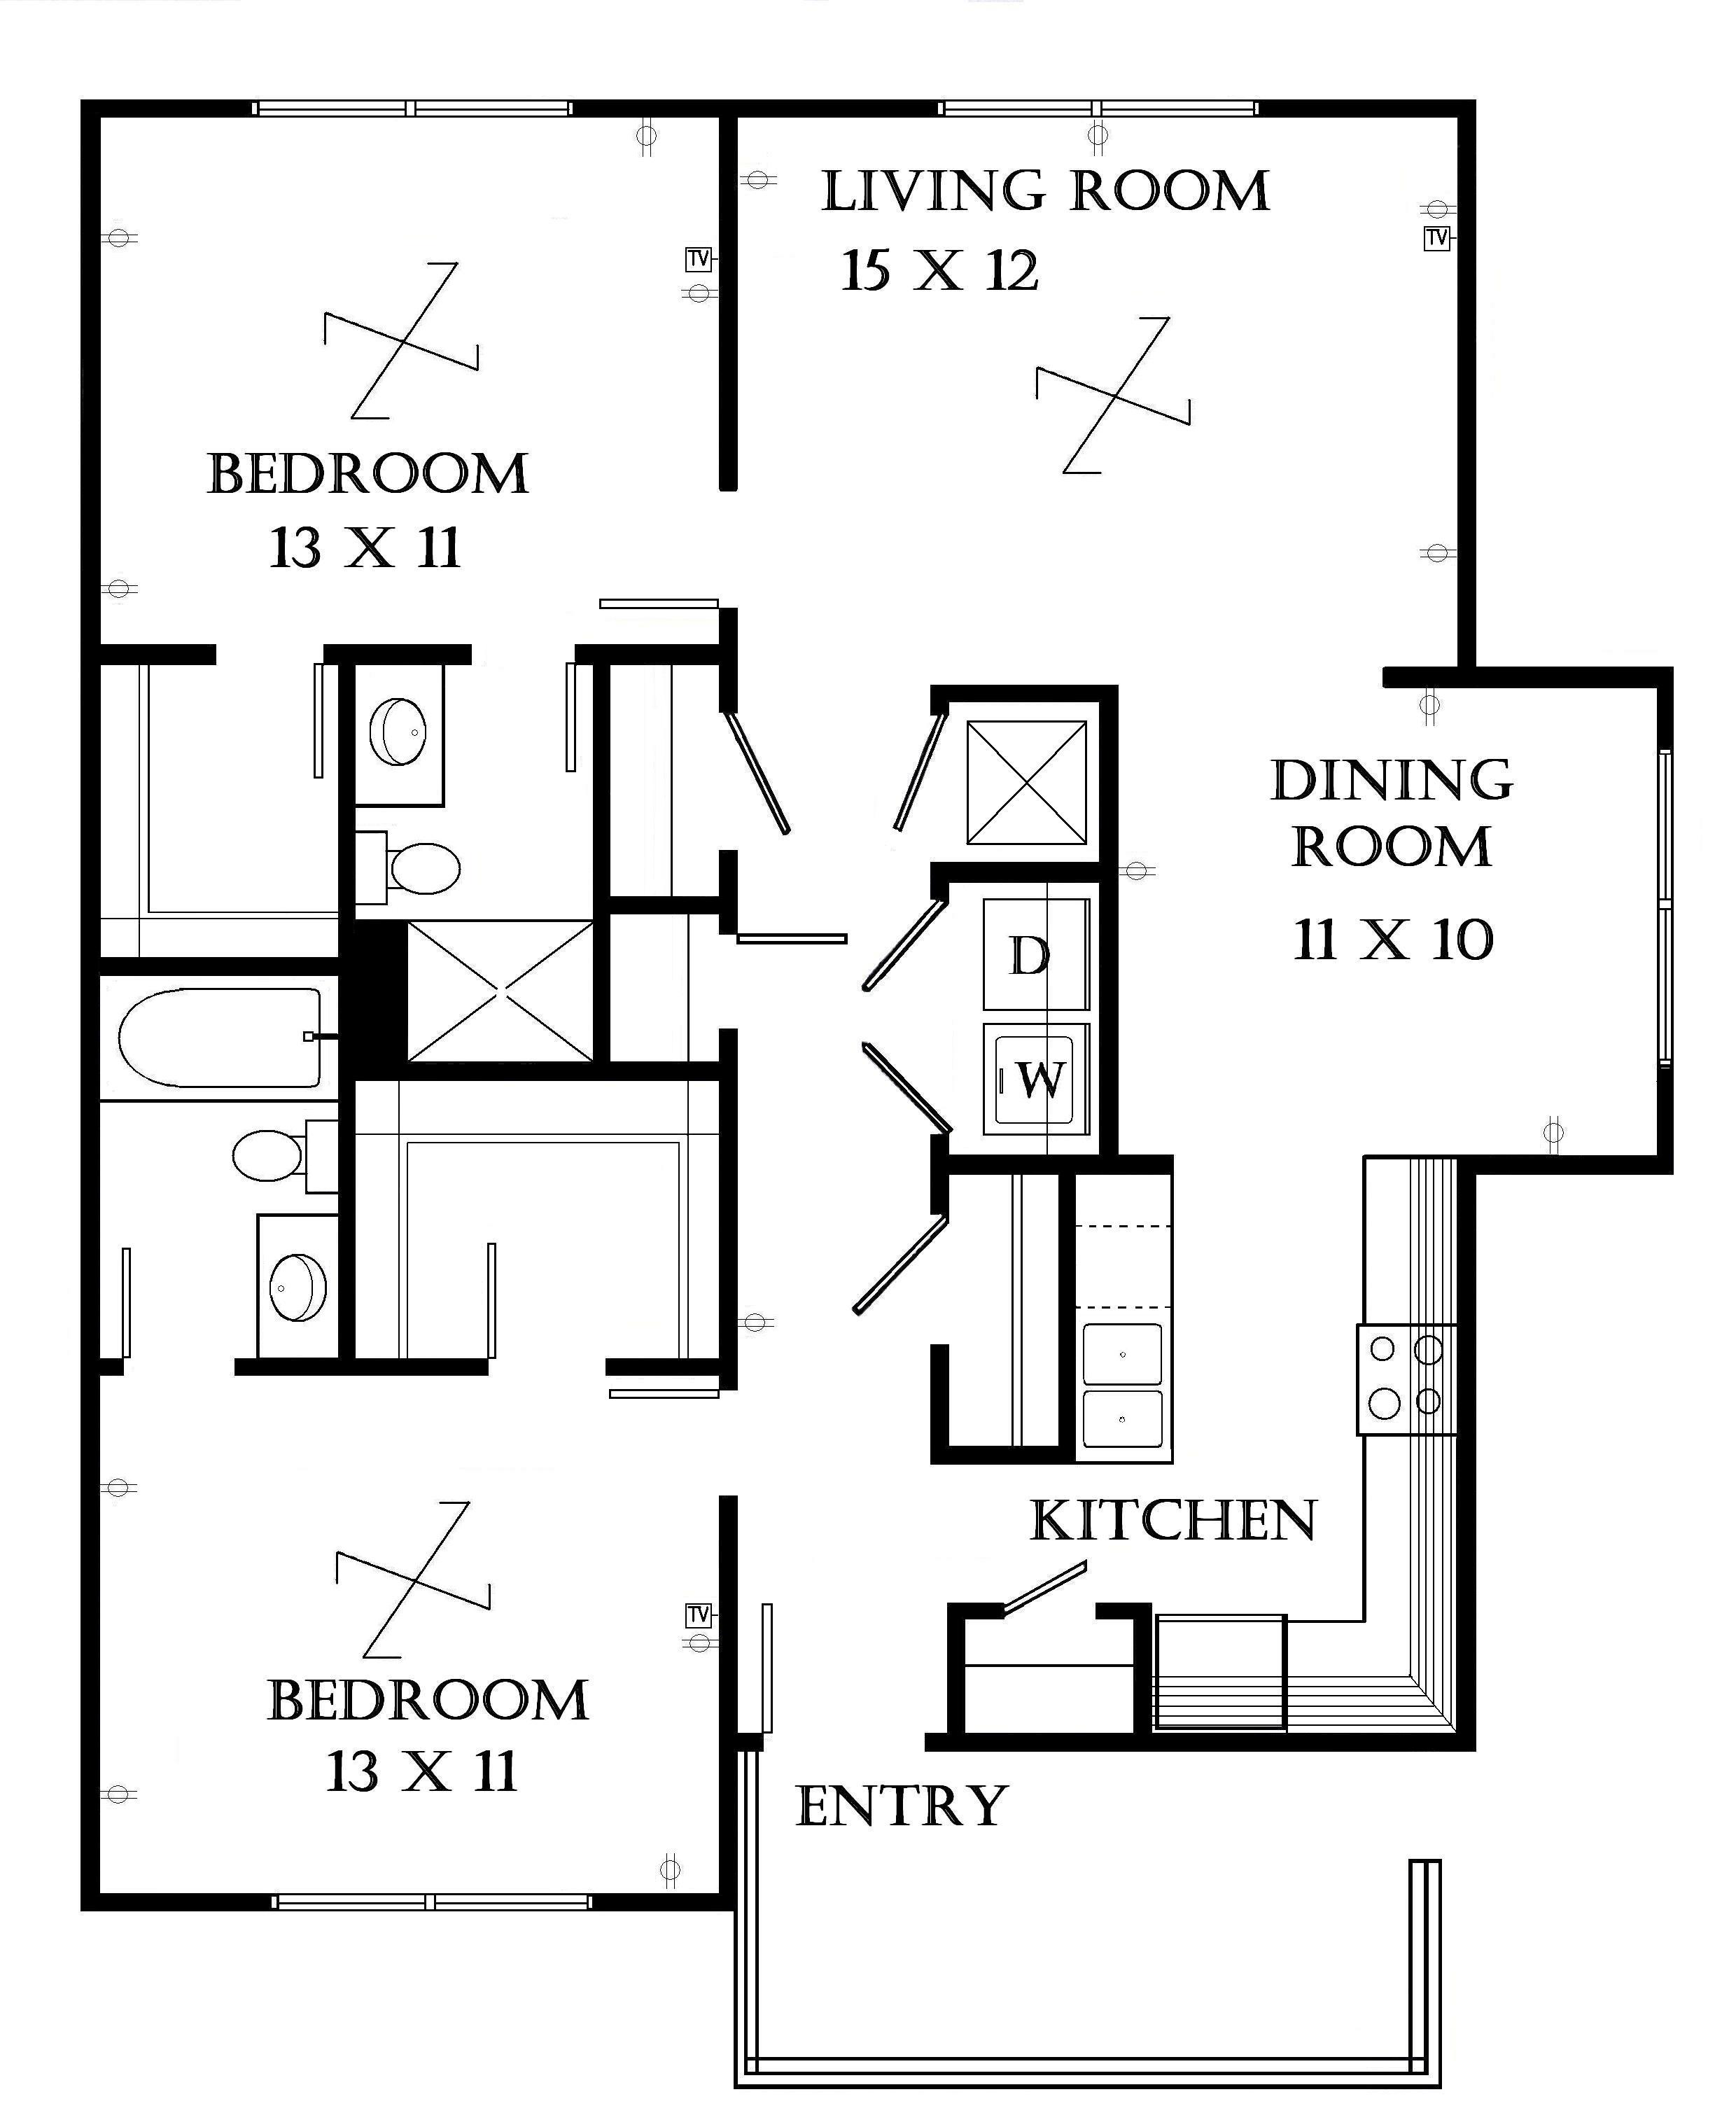 View larger. Lawrence Apartments   Meadowbrook   2601 Dover Square